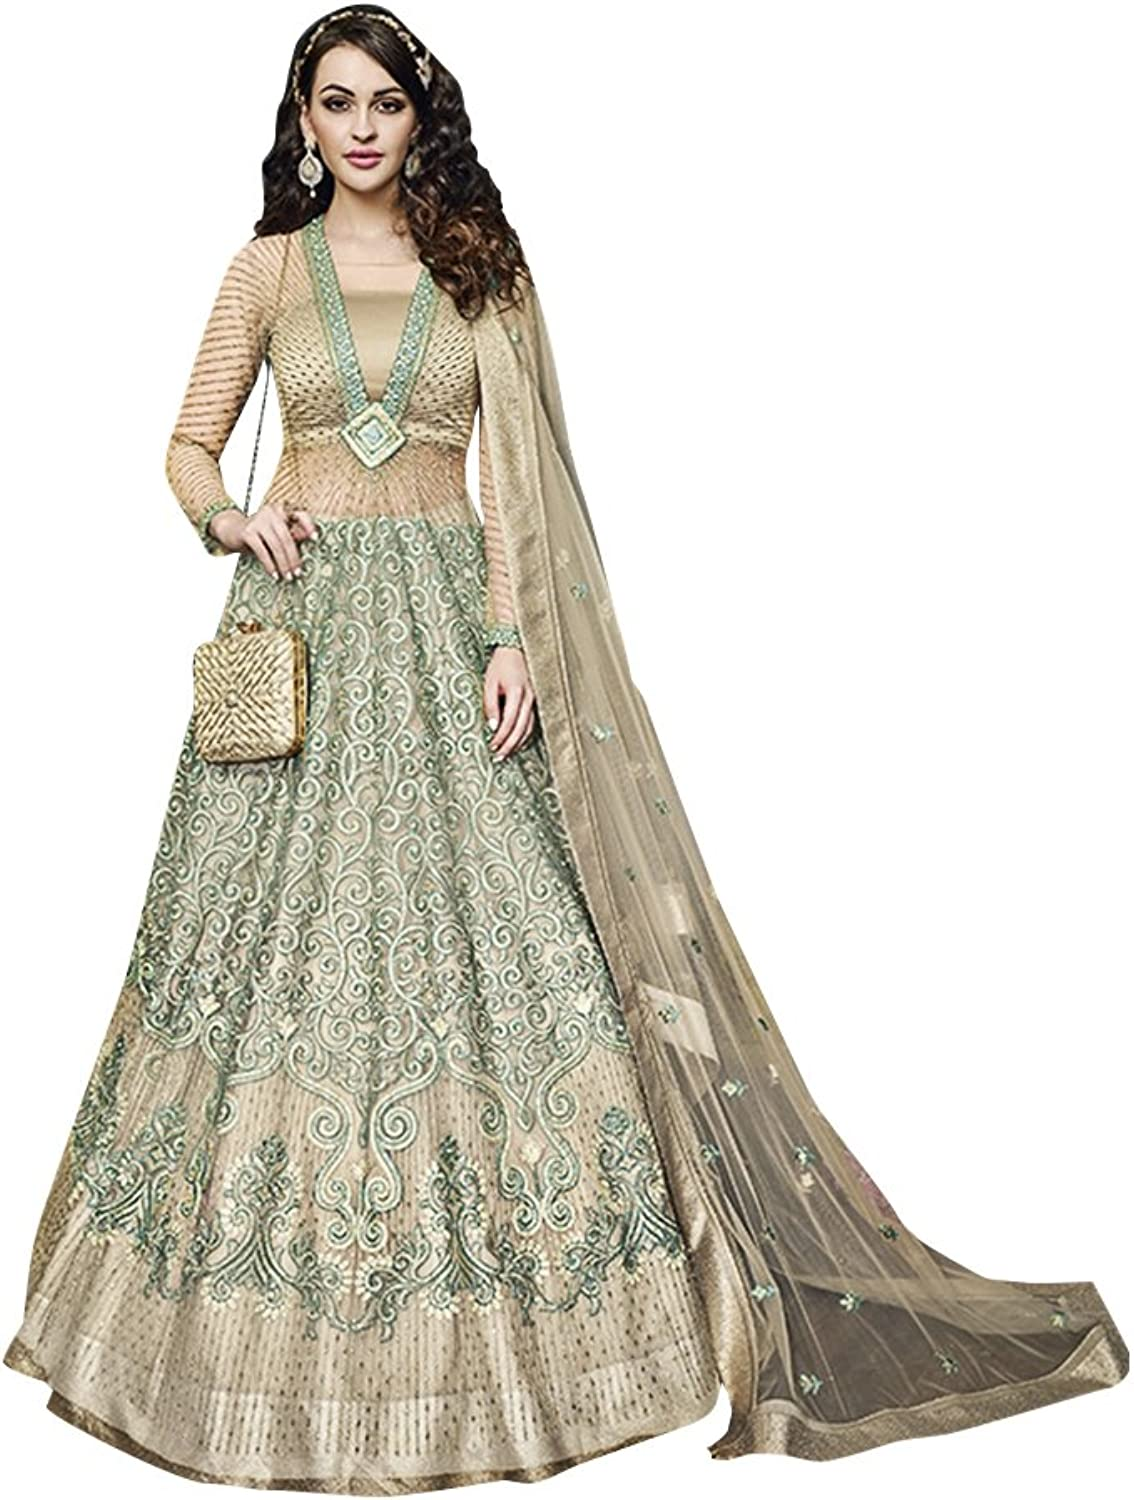 Bollywood Collection Anarkali Salwar Kameez Suit Ceremony Women Bridal Muslin 734 10